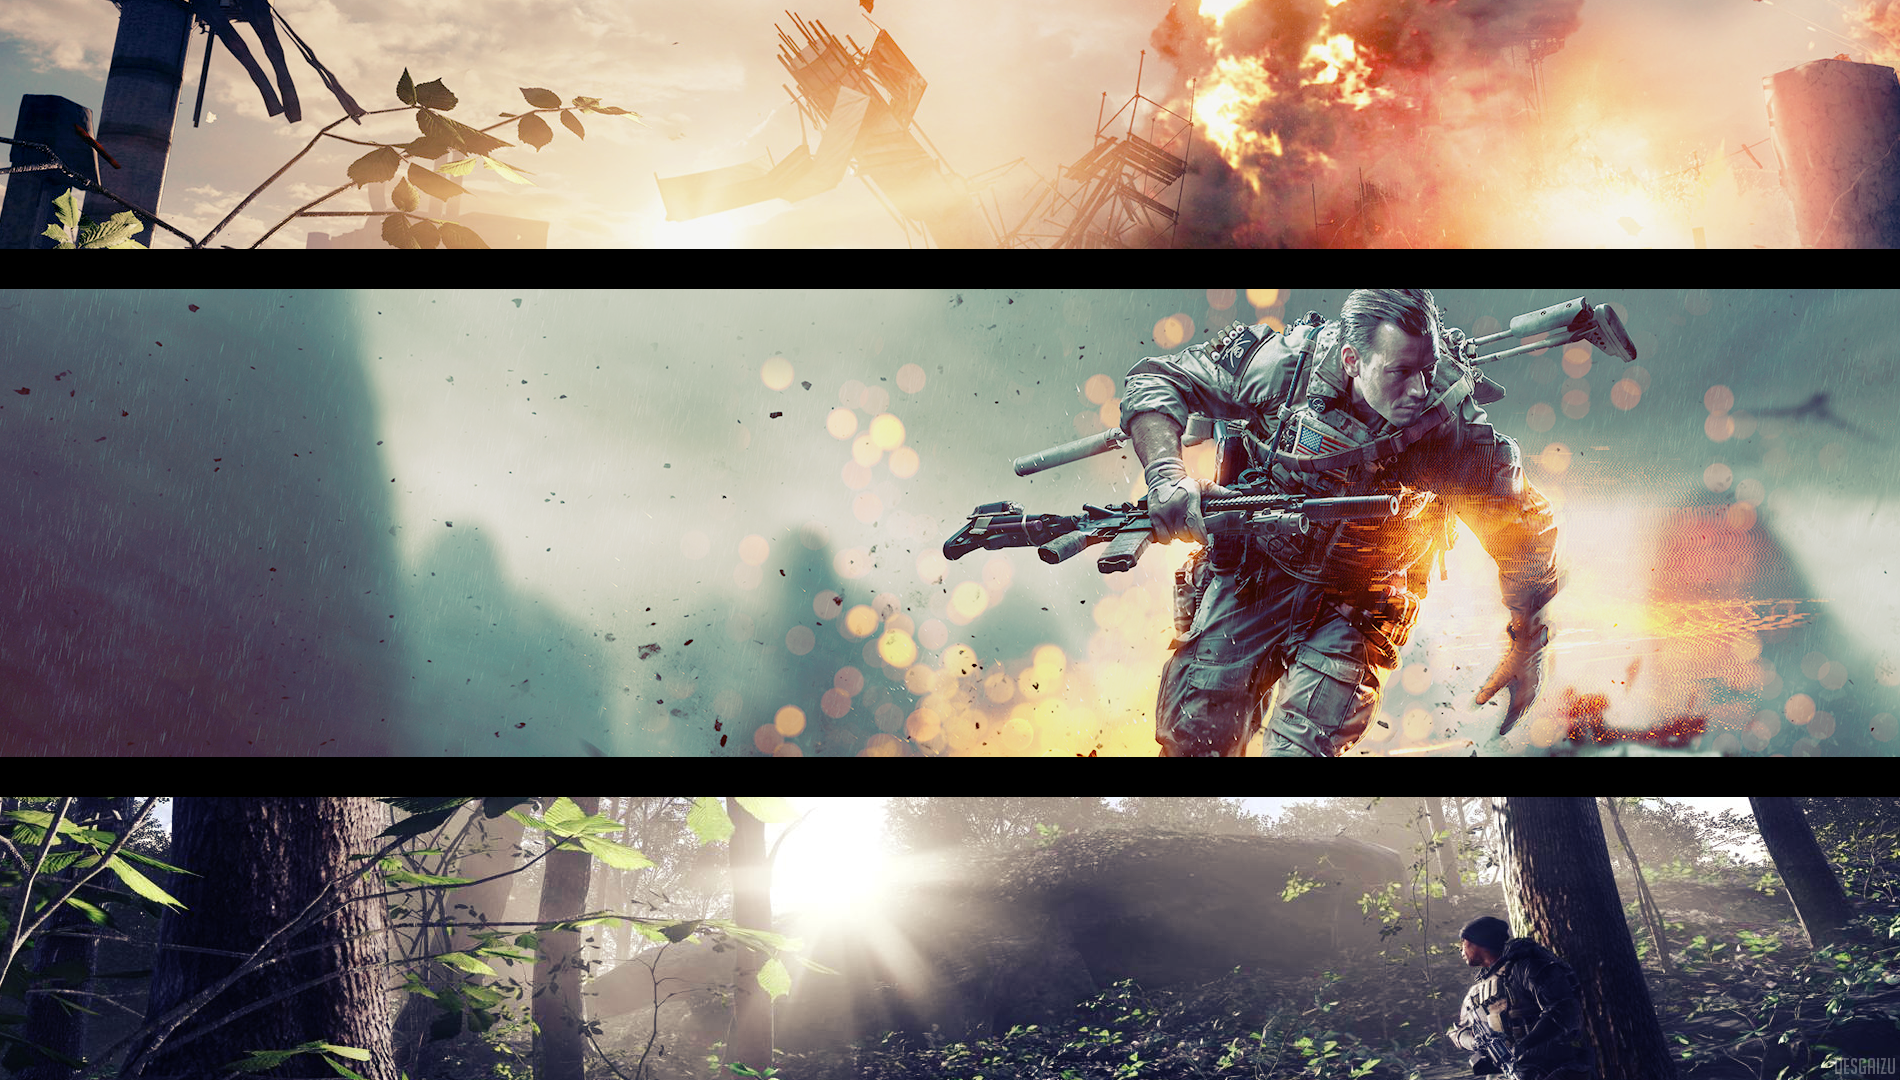 Battlefield 4 Wallpaper And Background Image 1900x1080 Id Images, Photos, Reviews